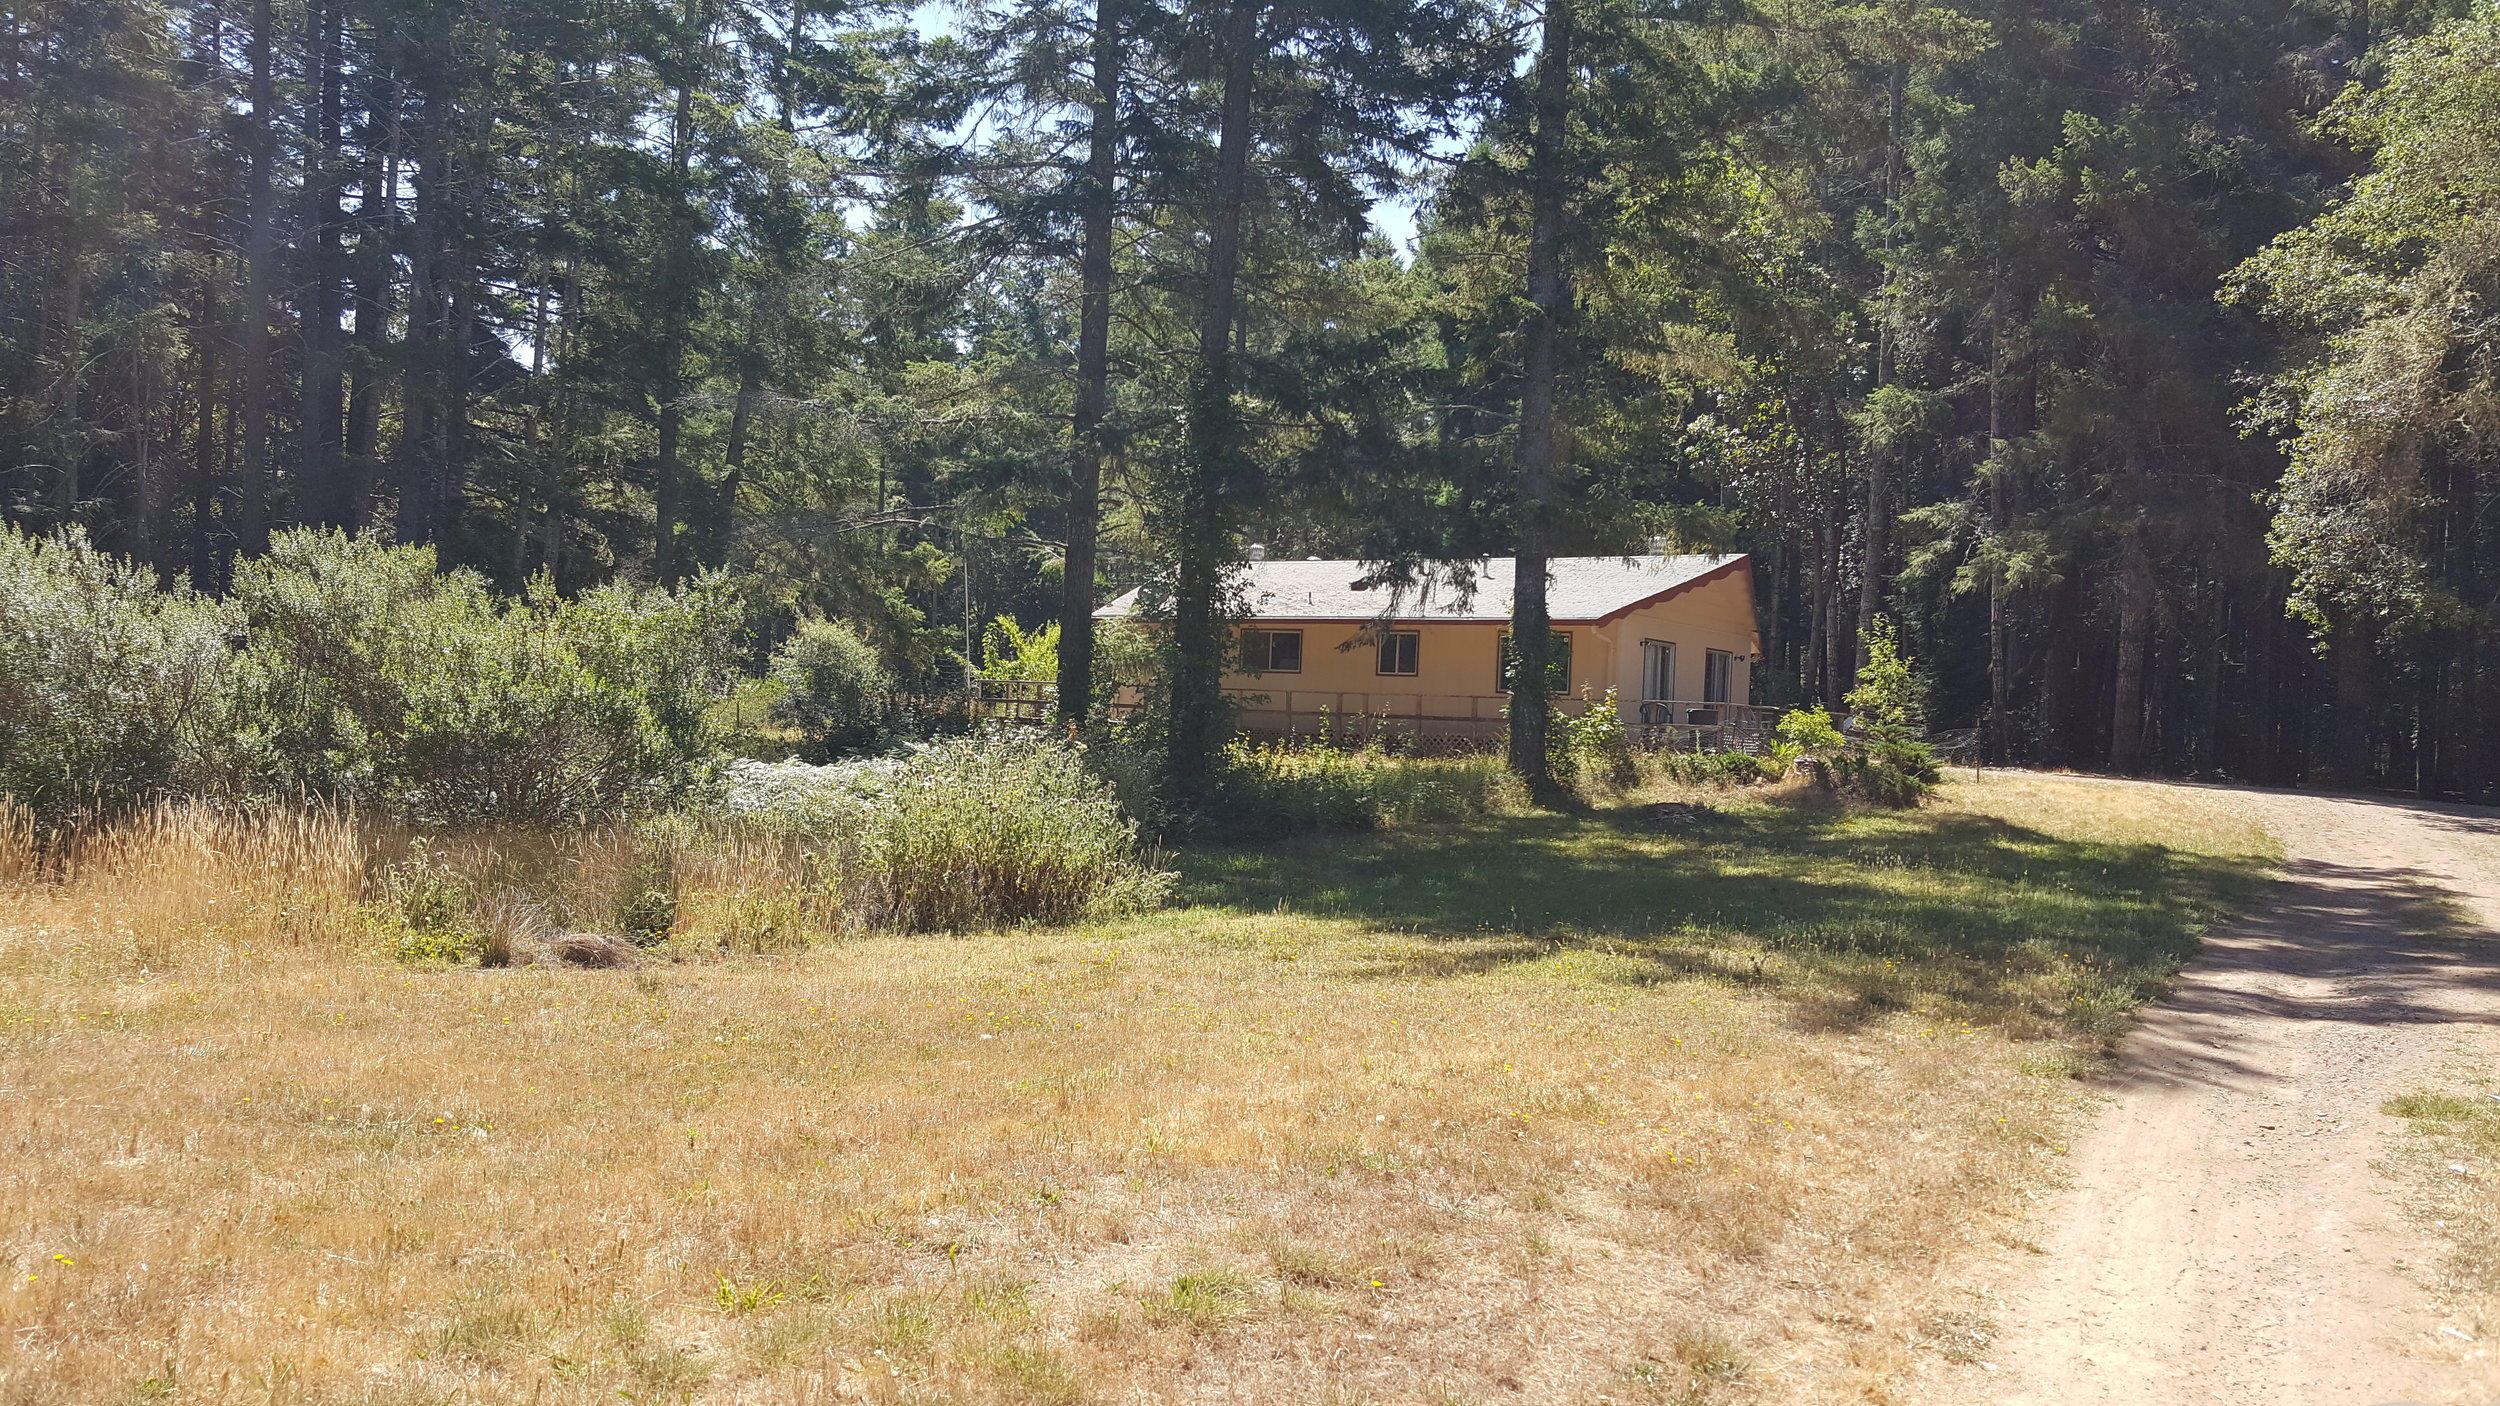 Home on 10+/- acres